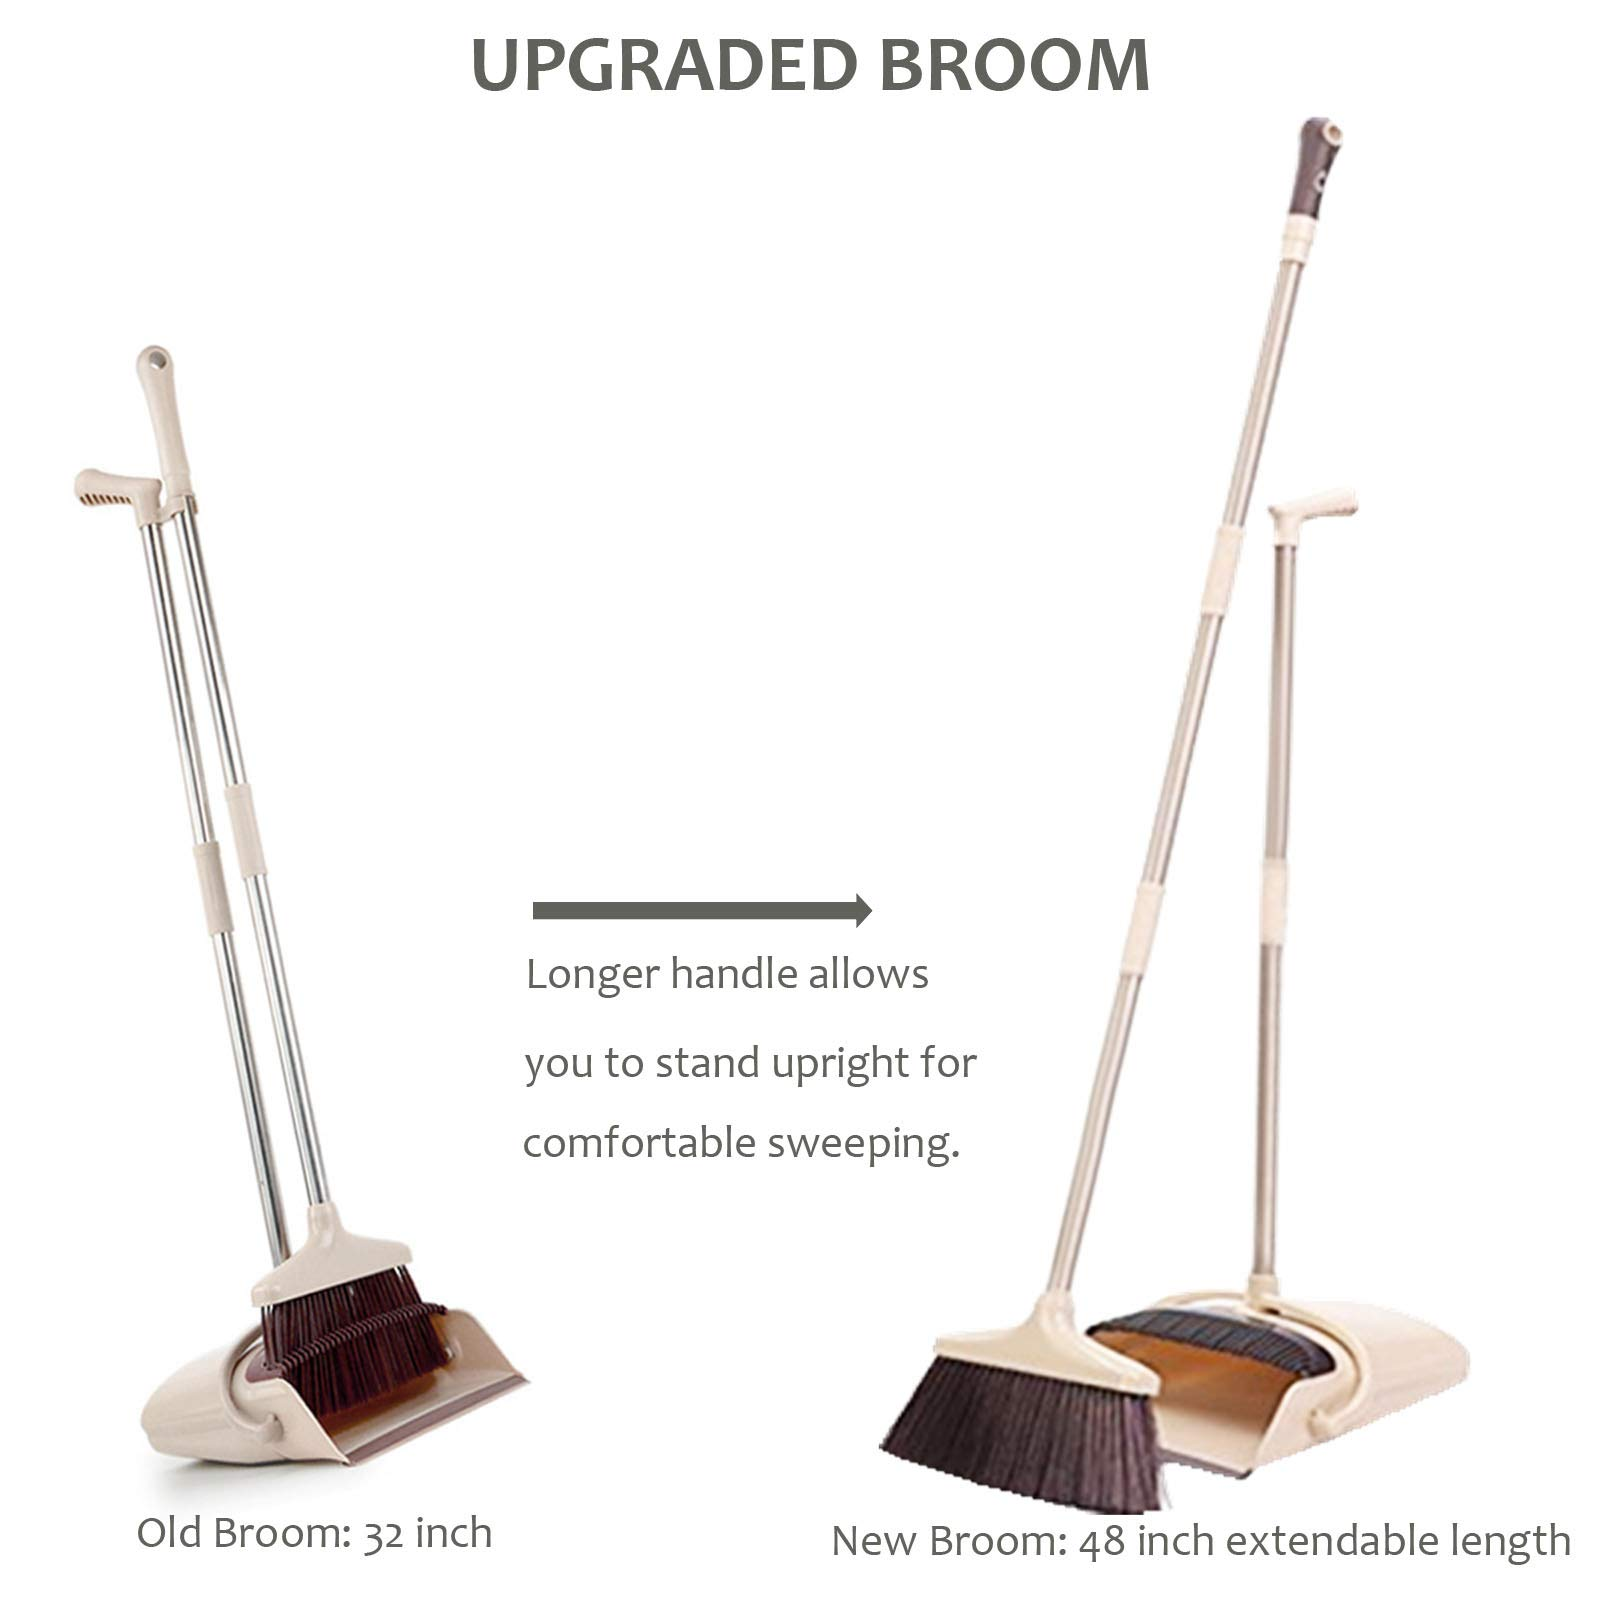 Broom and Dustpan Set, 48 inch Extendable Broom Standing Upright - Wind Proof - Foldable Sweep Set with Soft Bristles & Rubber Edge & Dust Pan with Teeth, Perfect for Kitchen, Garden, Office, etc. by SerBion (Image #6)